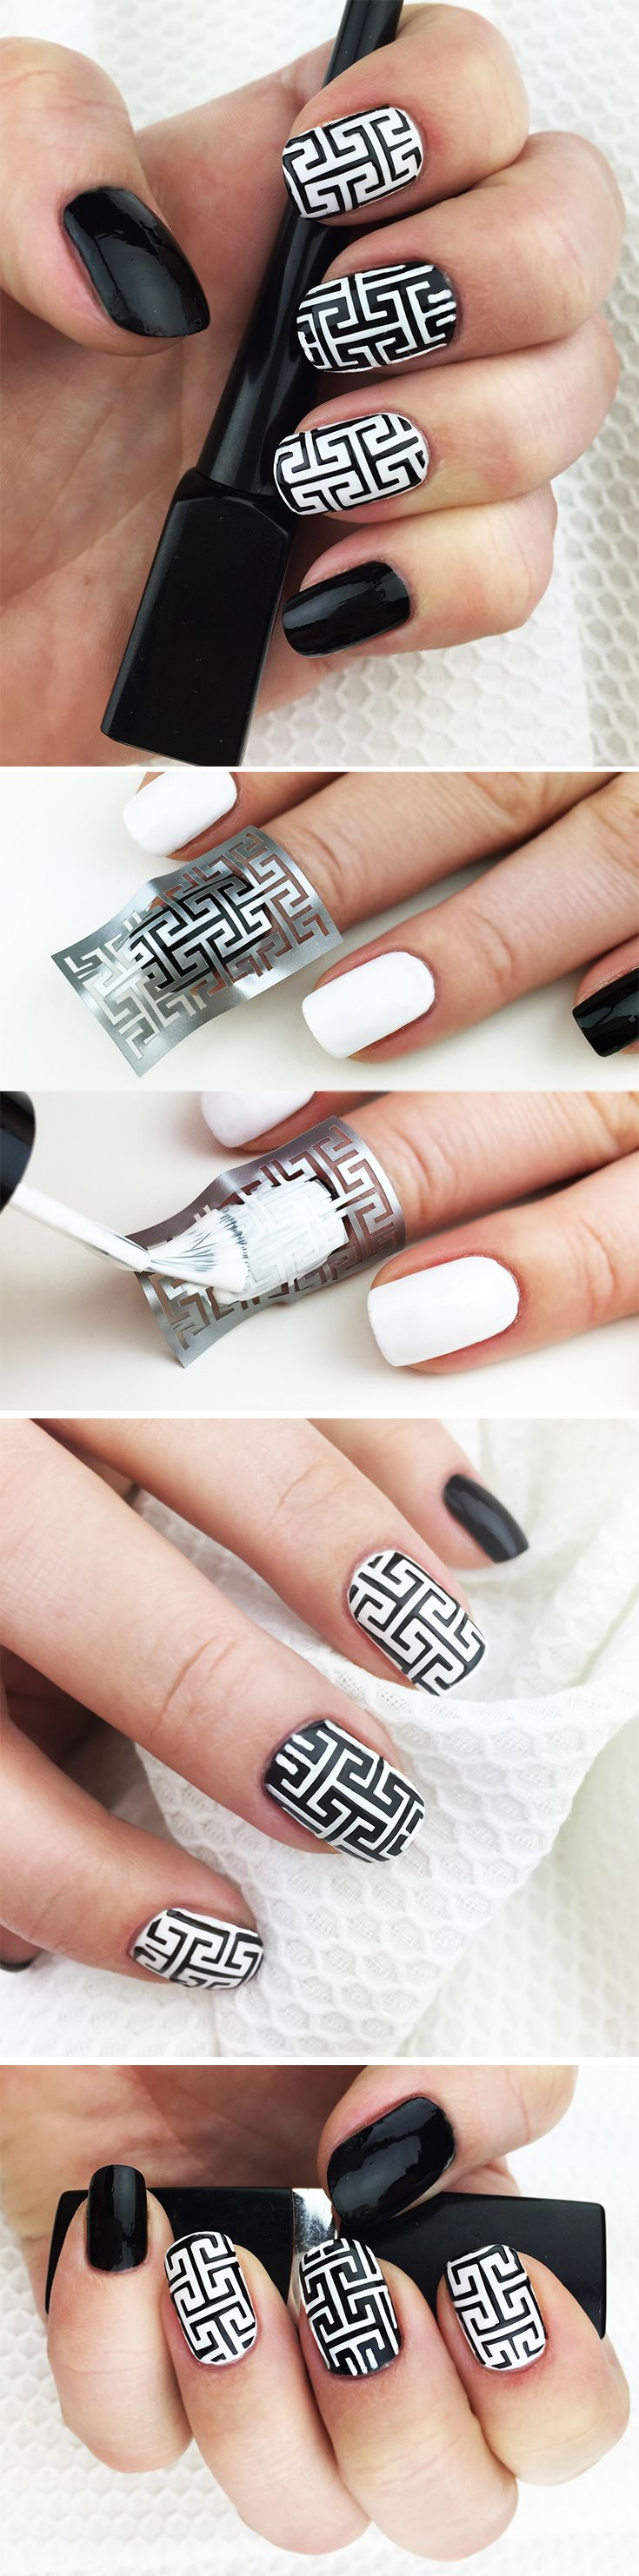 Pattern nail art designs fancy nail art for prom simple nail art lines - Sharp Lines Nail Stencils Set Incredible Nail Art Vinyl Stencils By Unail